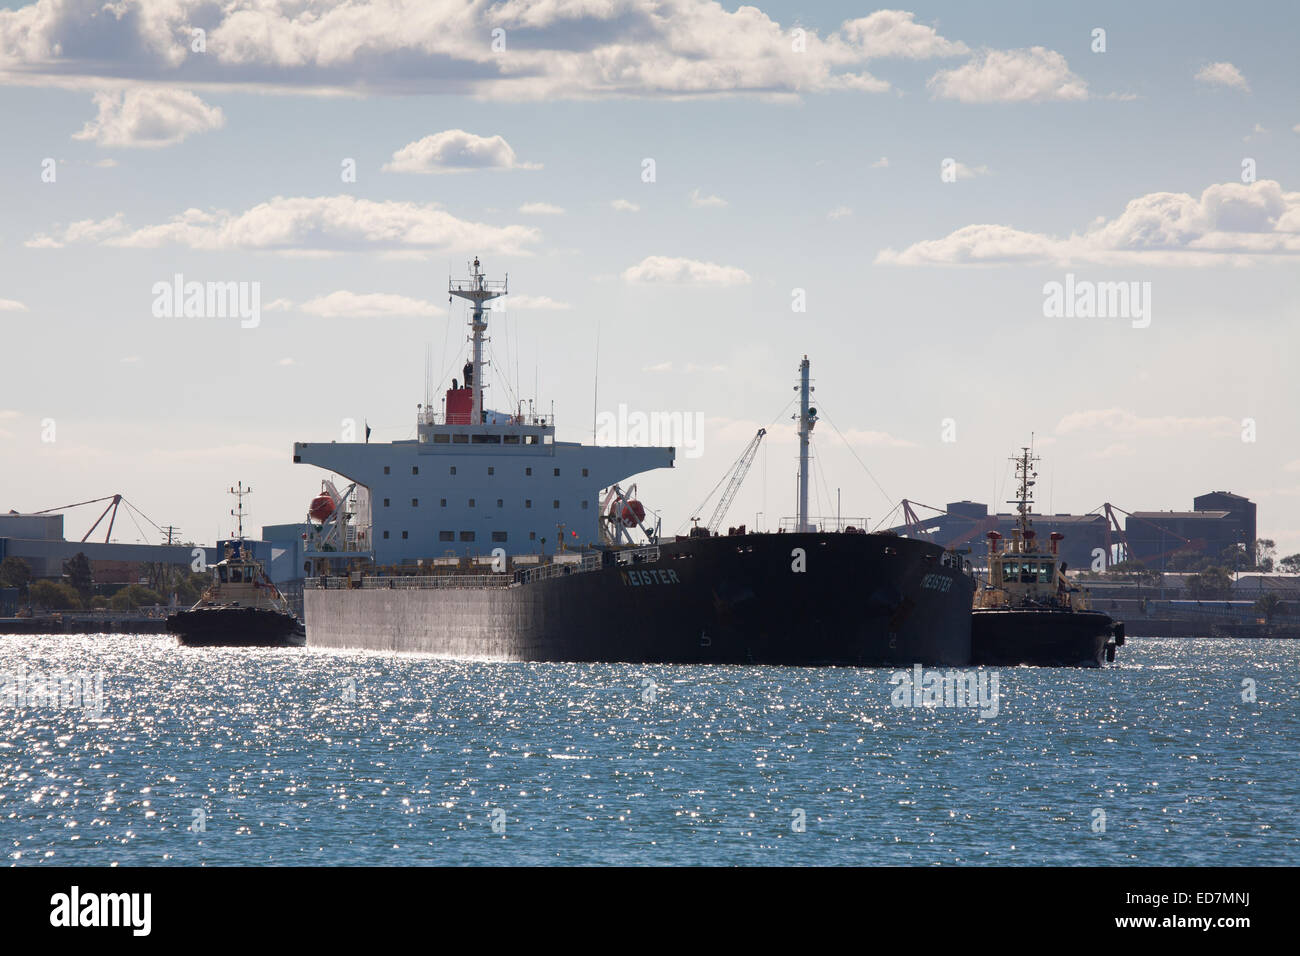 Bulk carrier Mesiter fully loaded with coal from the Hunter Valley coal mines is heading for South Korea Newcastle - Stock Image